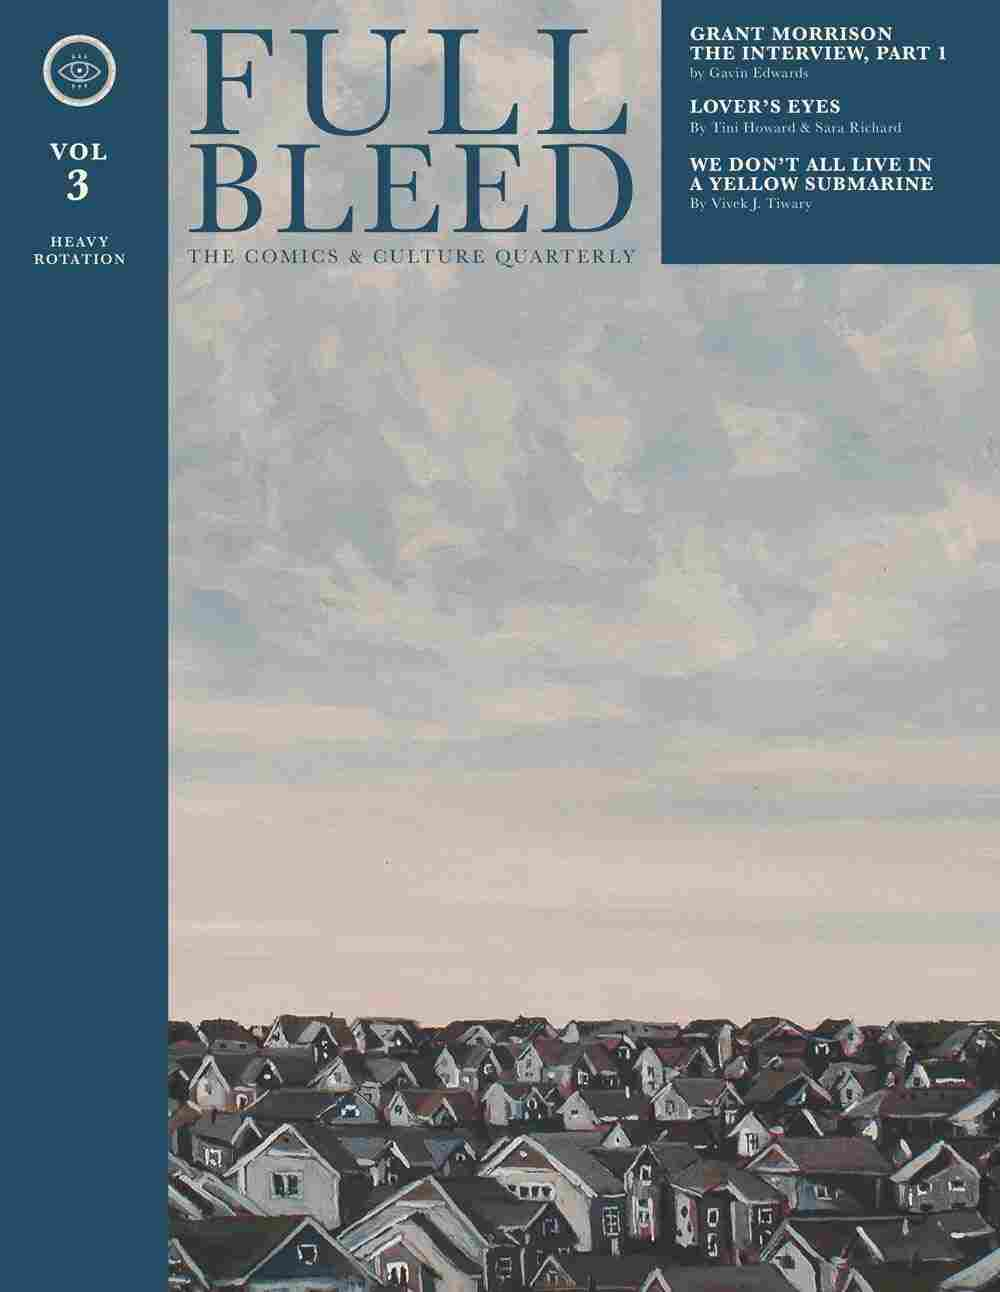 Full Bleed, the Comics & Culture Quarterly, vol. 3